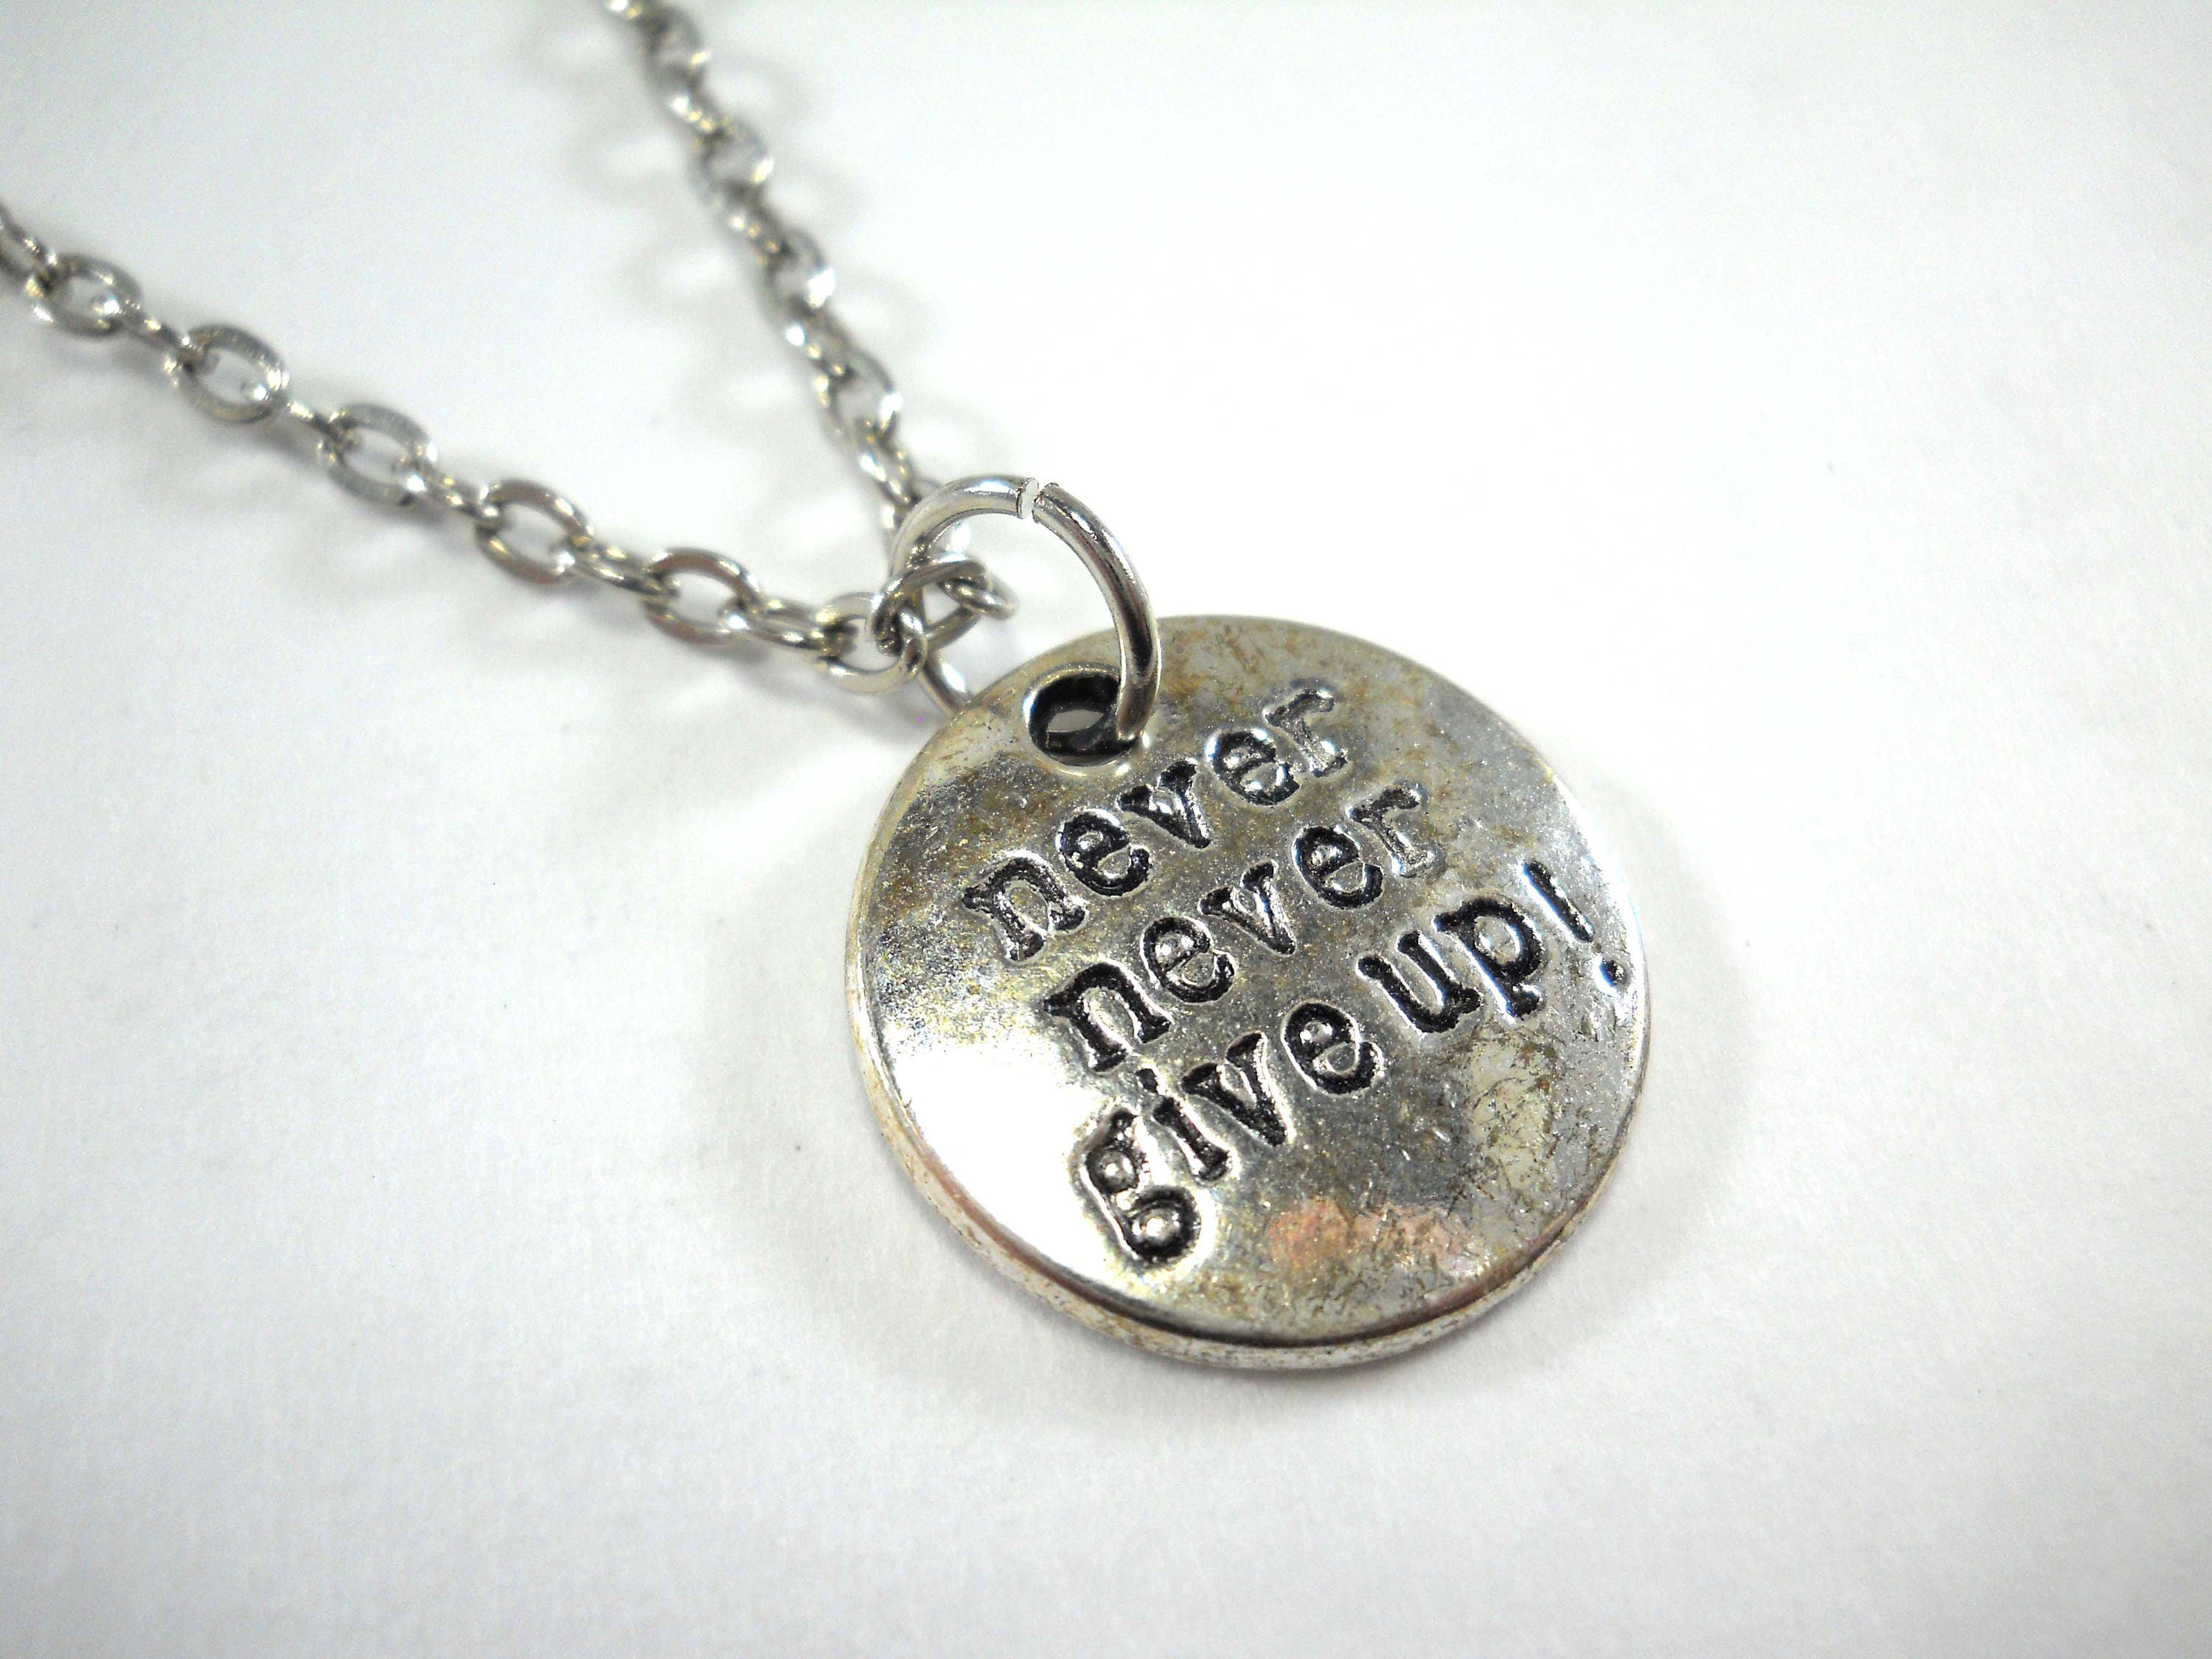 Never never give up charm pendant necklace antique silver tone never never give up charm pendant necklace antique silver tone motivational charm necklace mens necklace gift for men womens necklace aloadofball Images